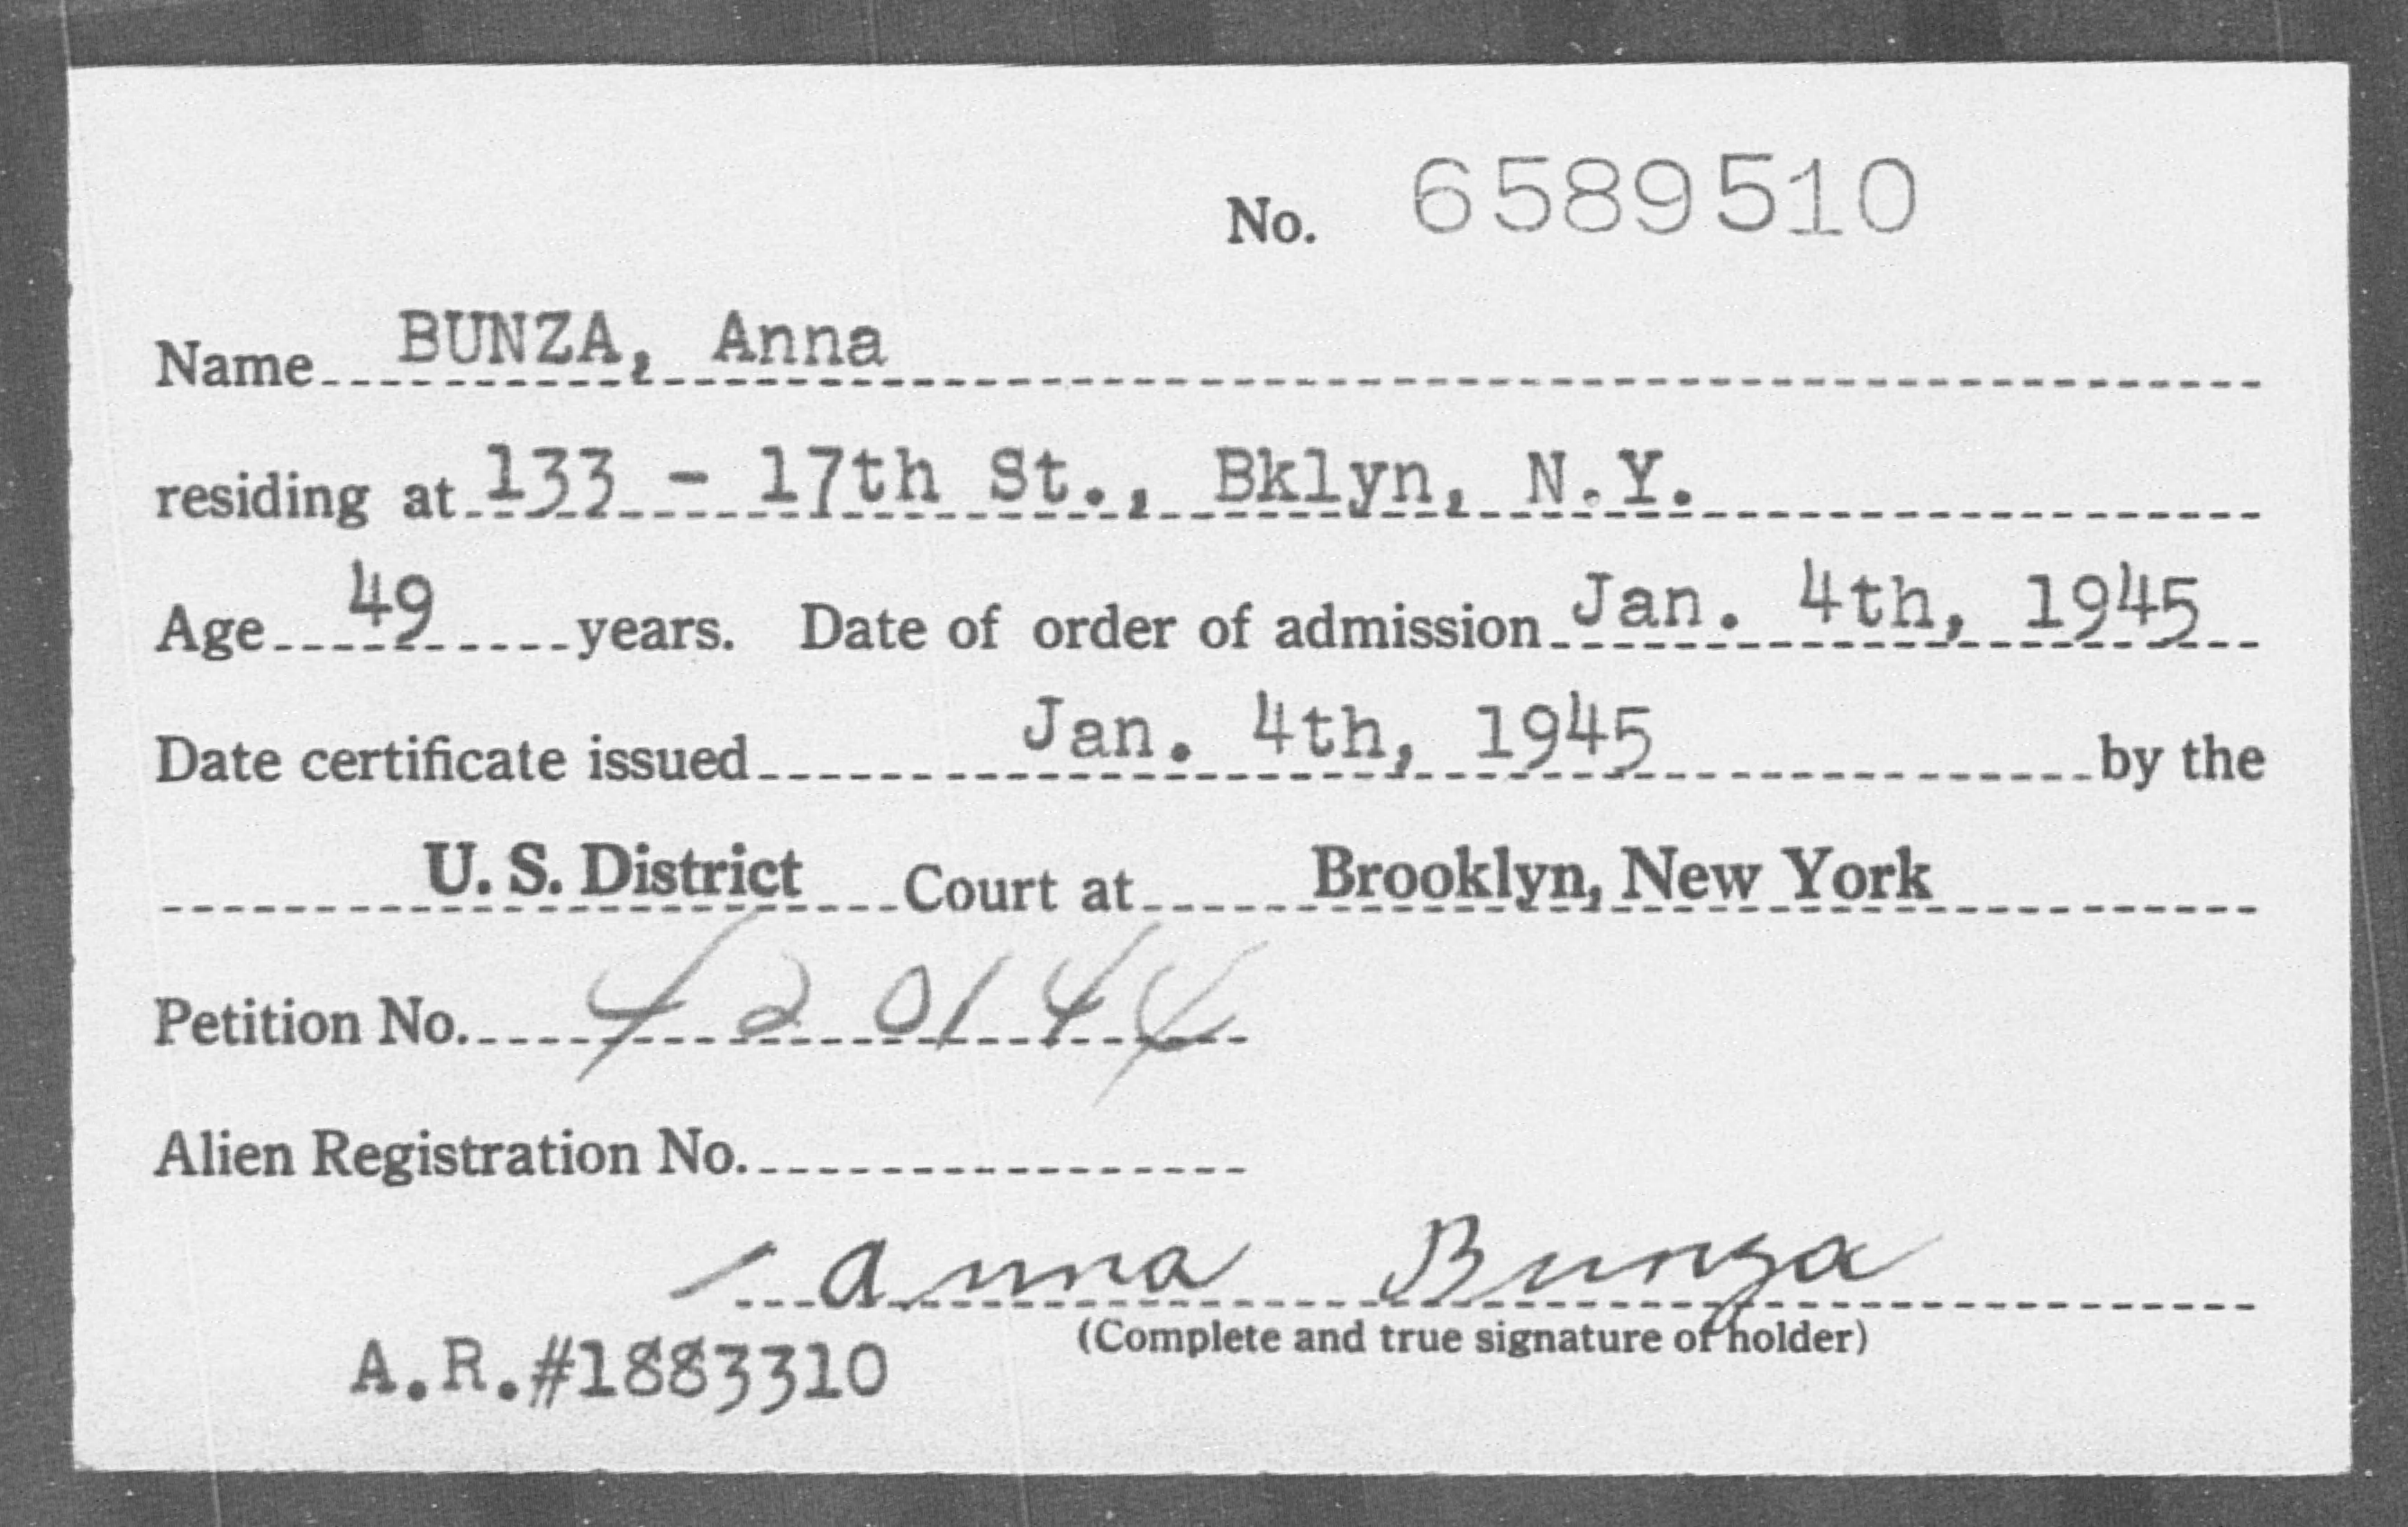 BUNZA, Anna - Born: [BLANK], Naturalized: 1945